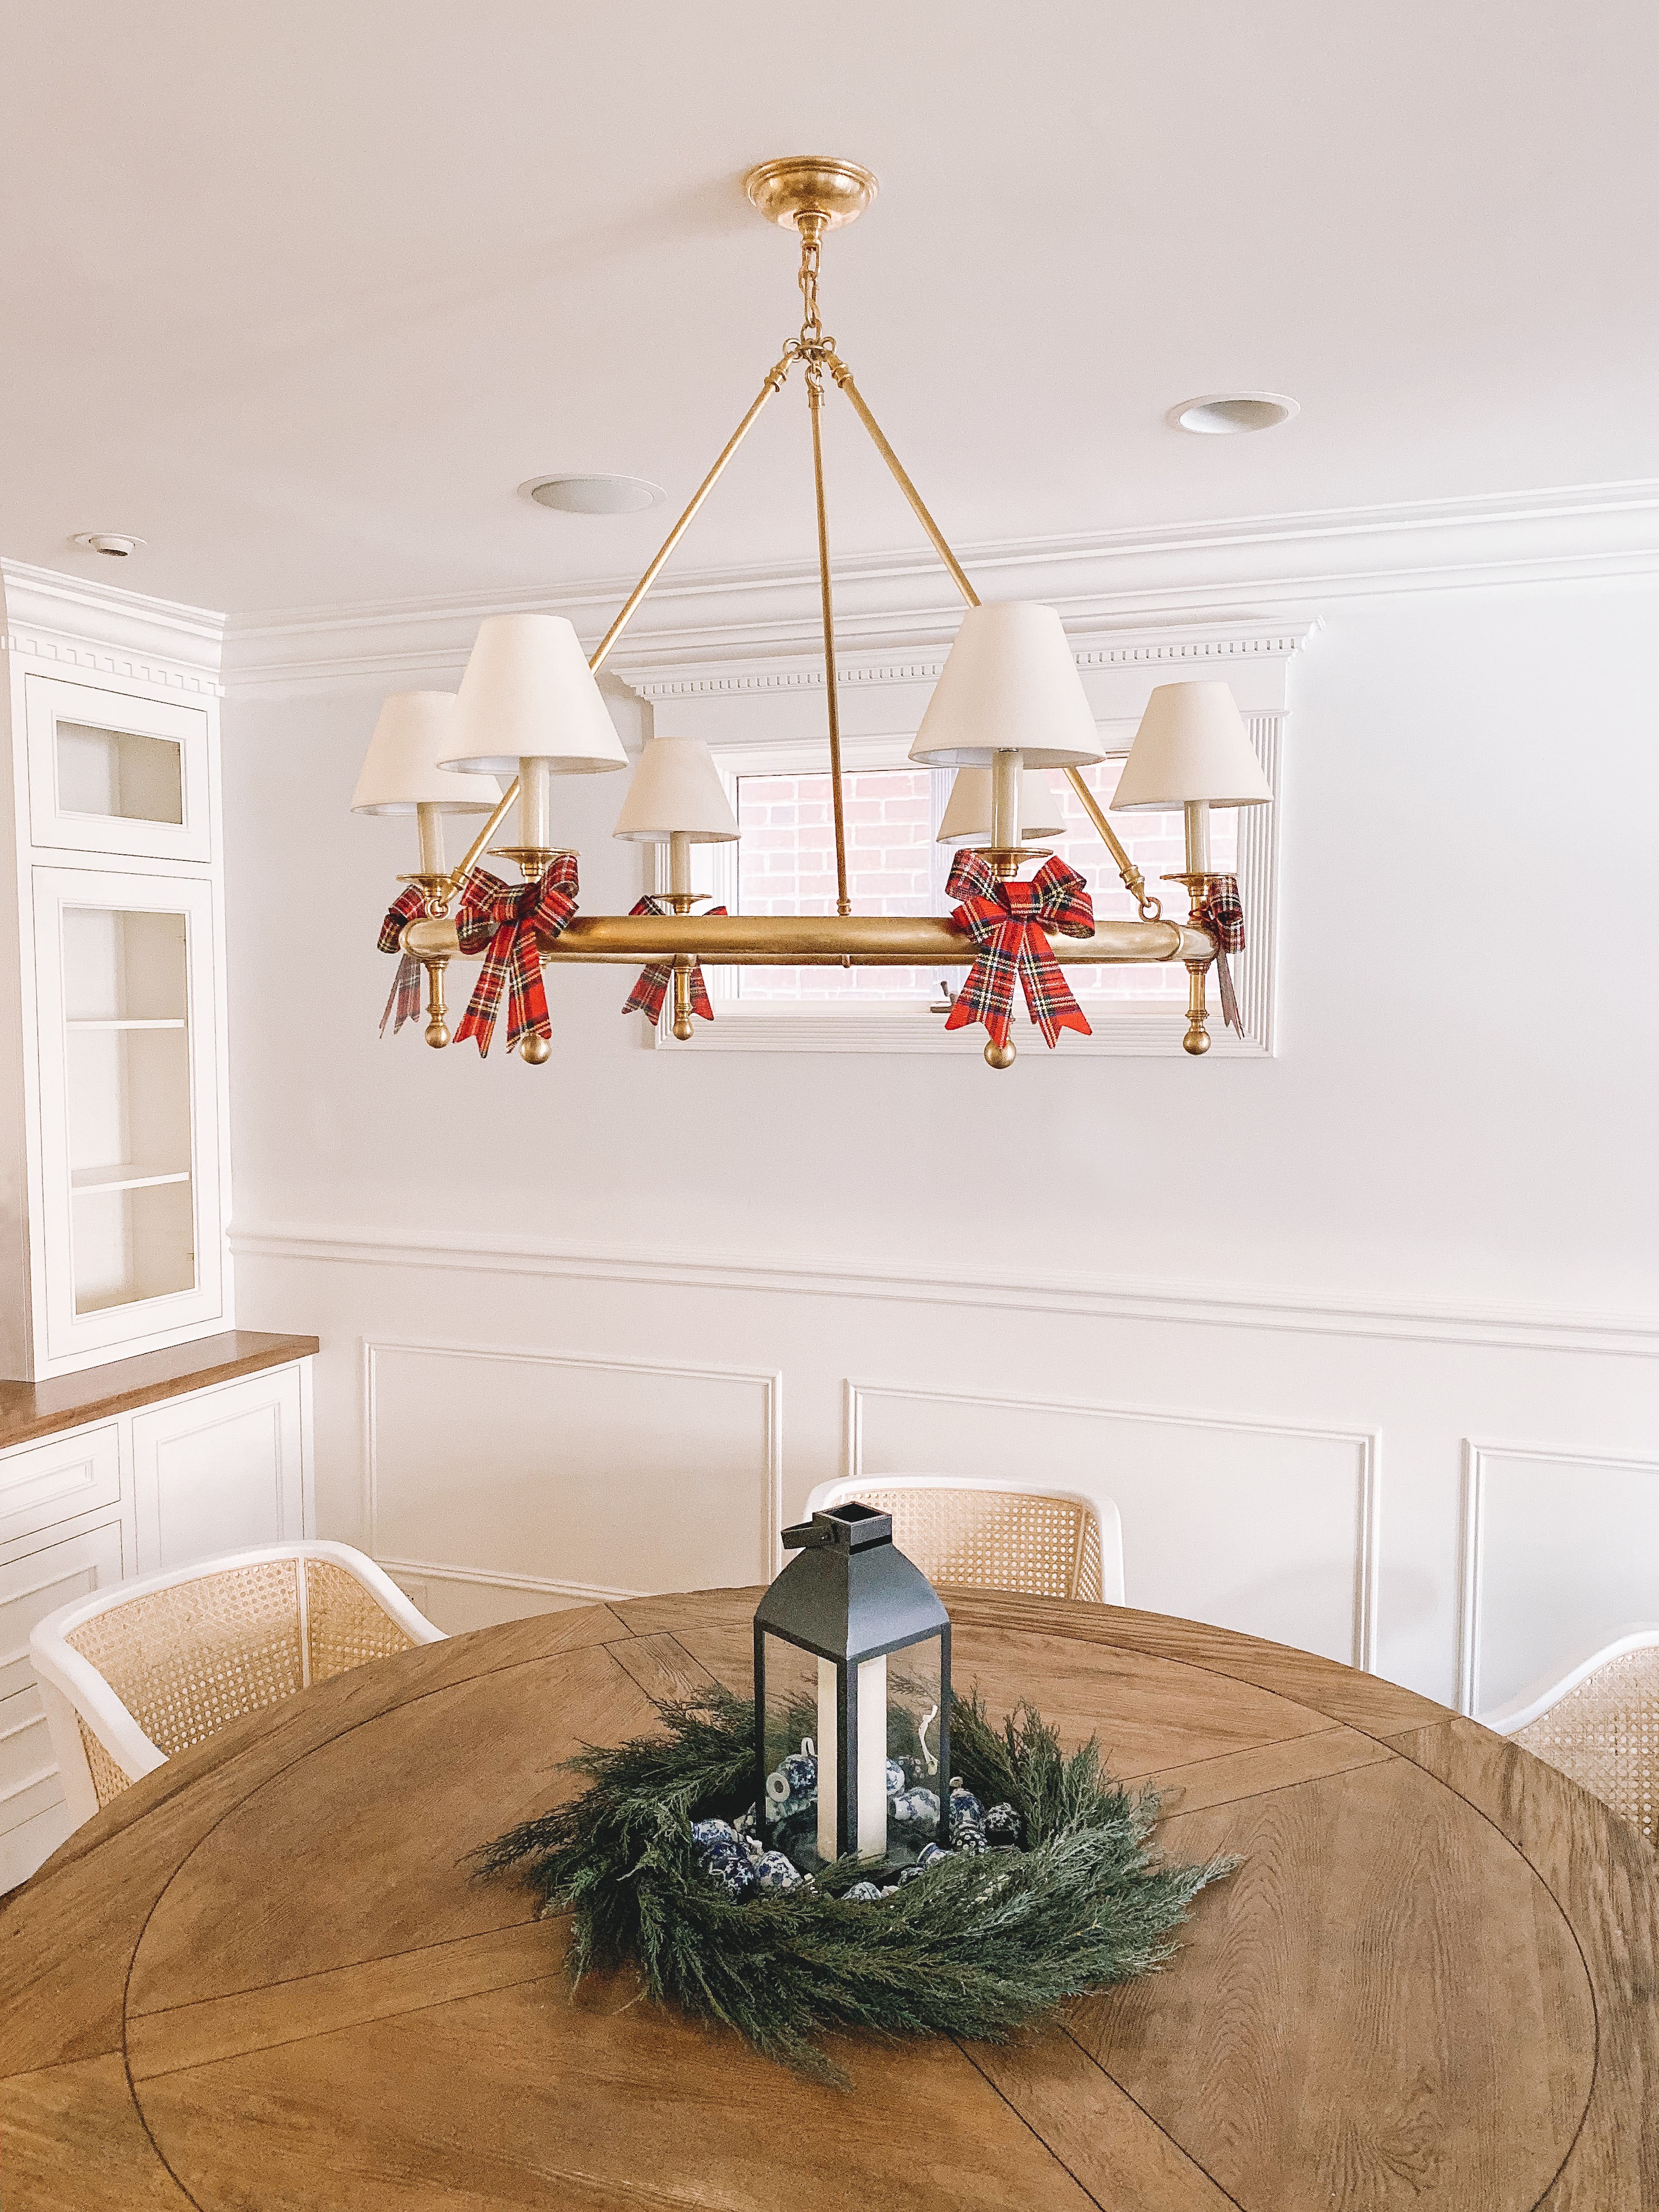 Our recent home purchases include a lantern, a wreath, and a chandelier.